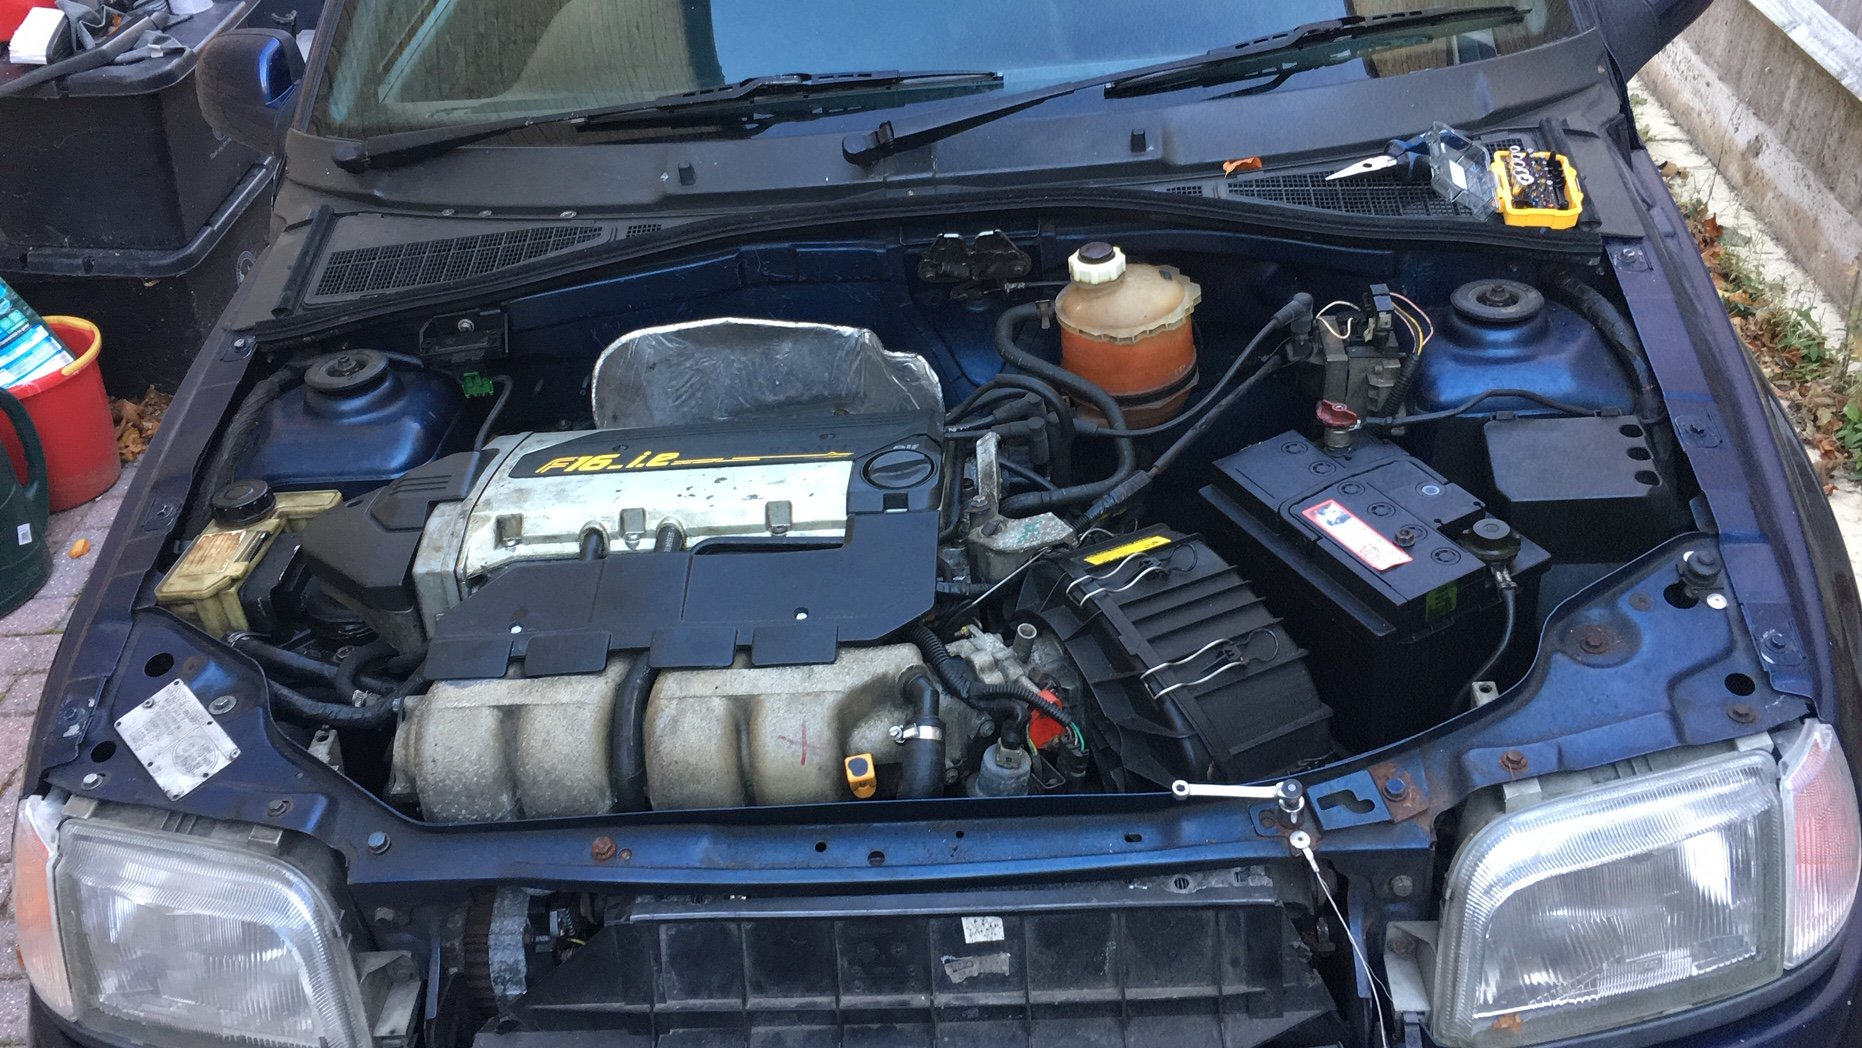 1991 Mk1, Phase 1 Clio J699 FPN For Sale (picture 4 of 6)